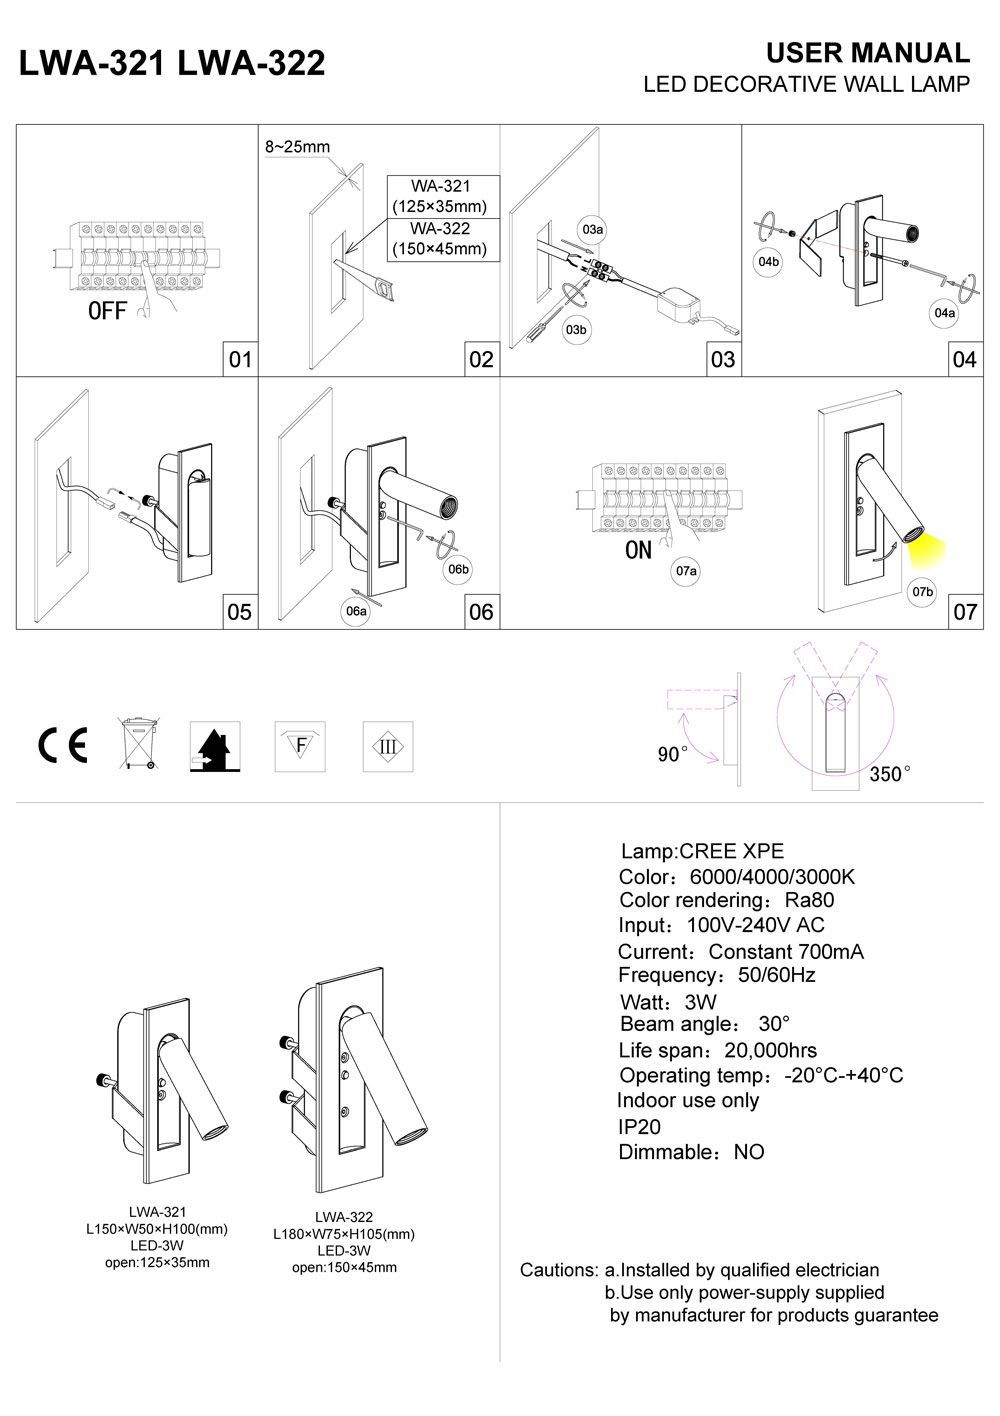 LWA322 LED reading light installation guide